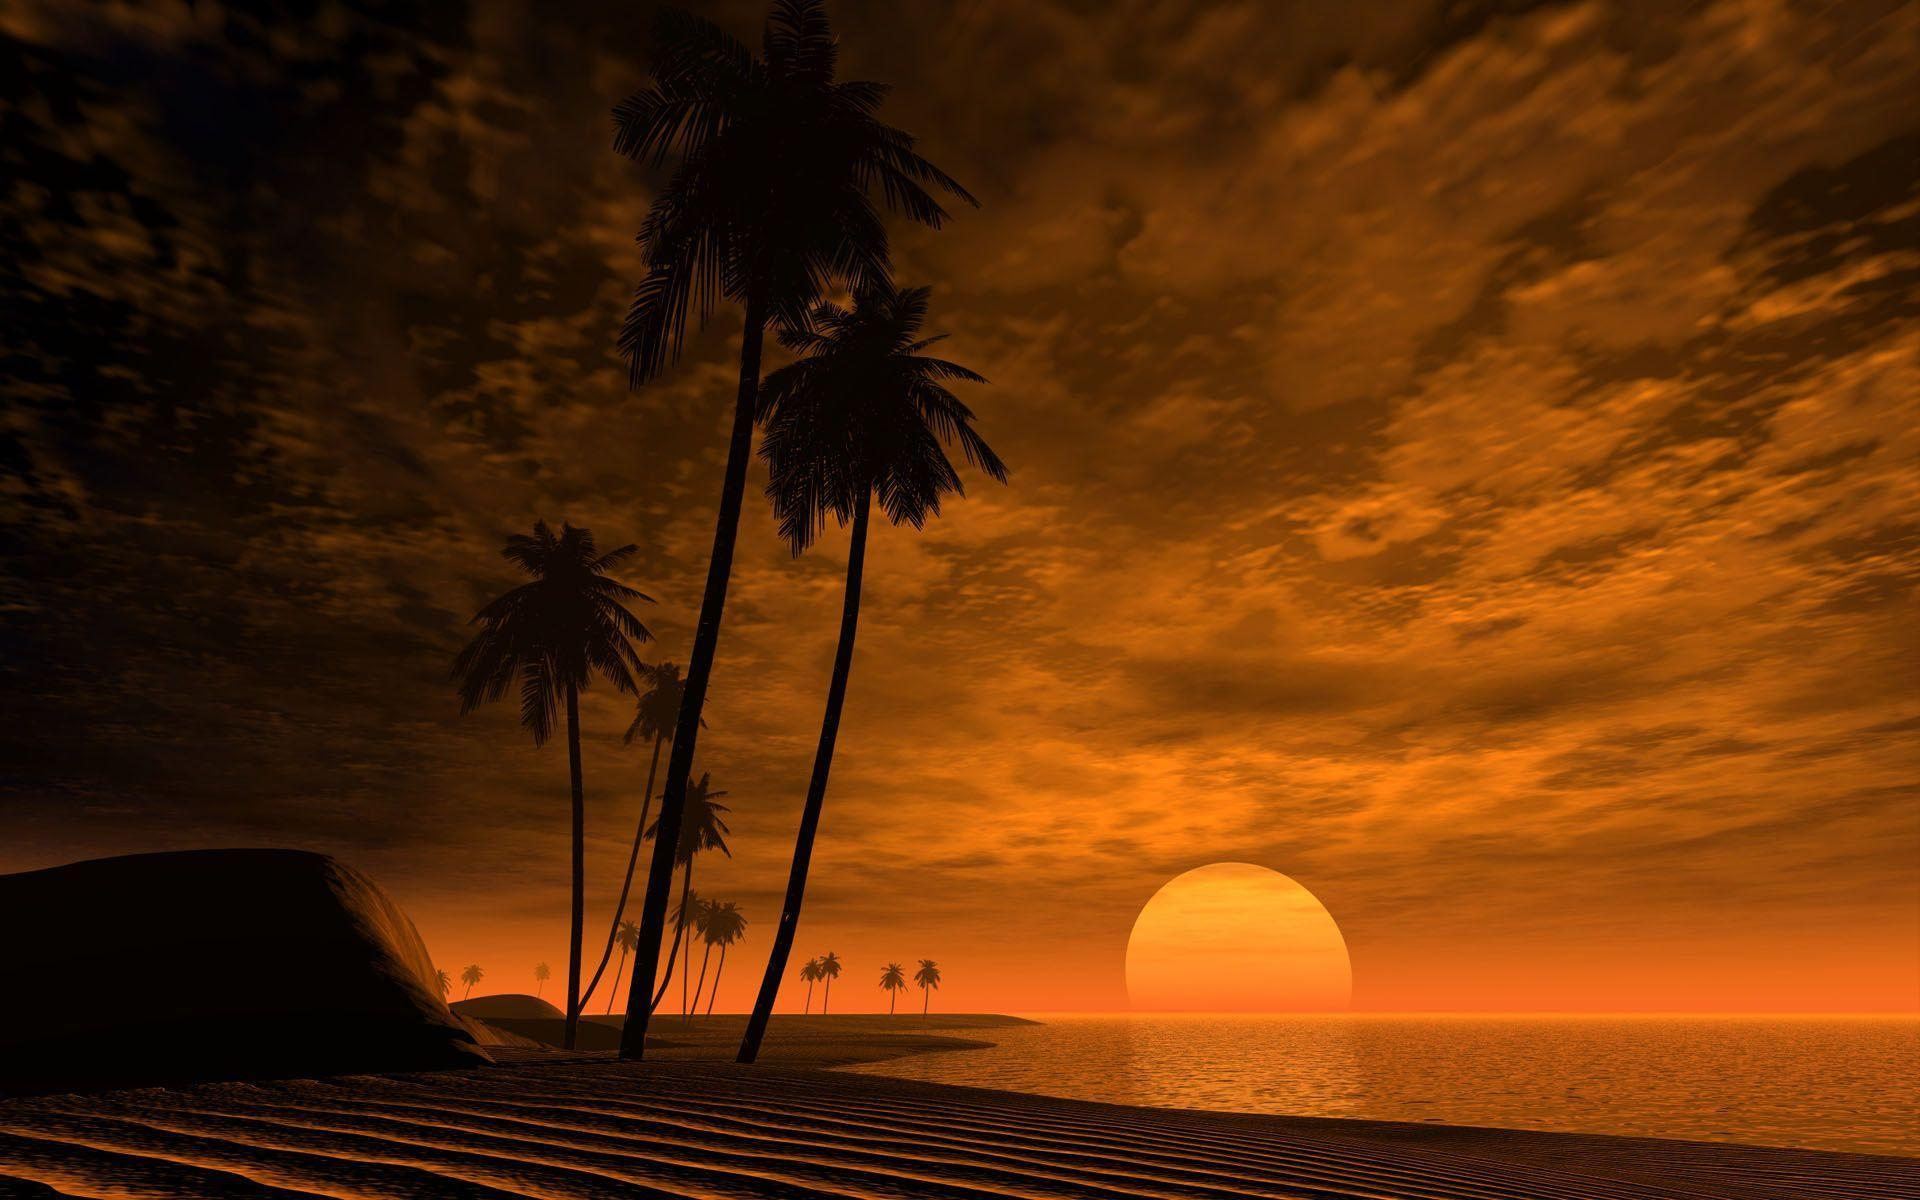 African Sunset Wallpapers | Sky HD Wallpaper